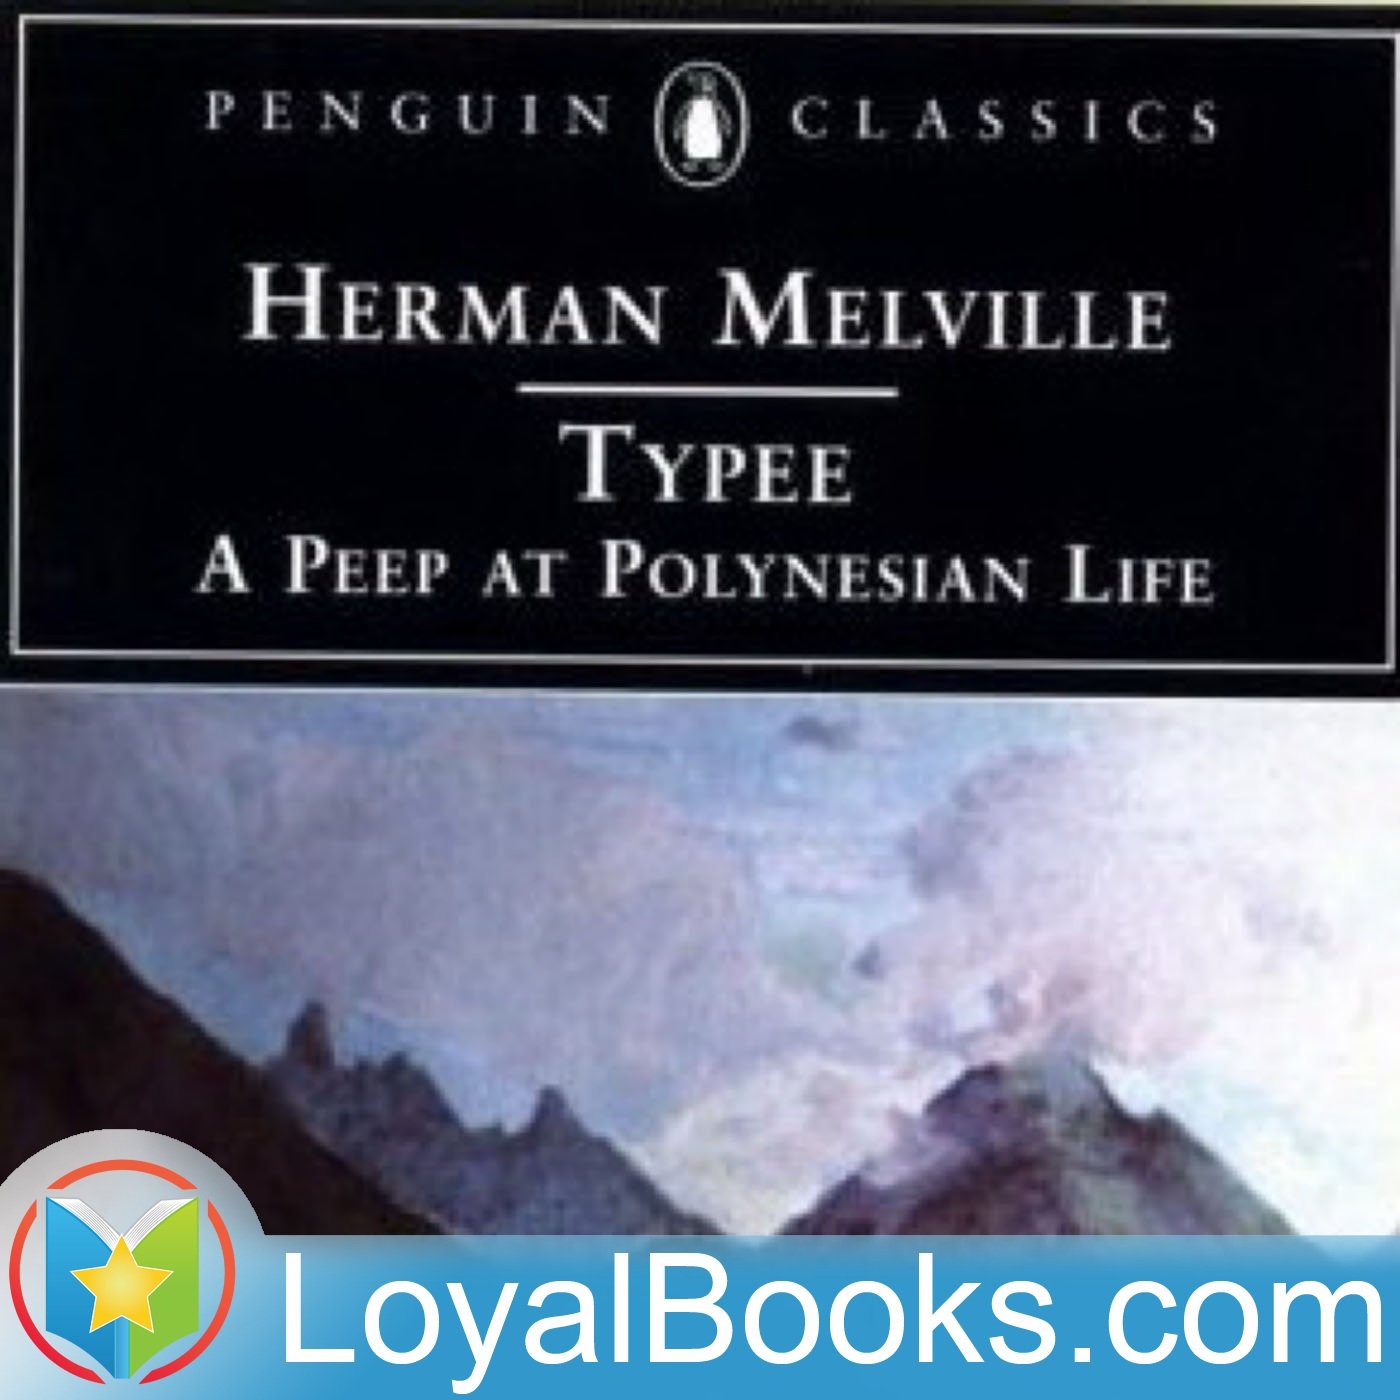 <![CDATA[Typee by Herman Melville]]>